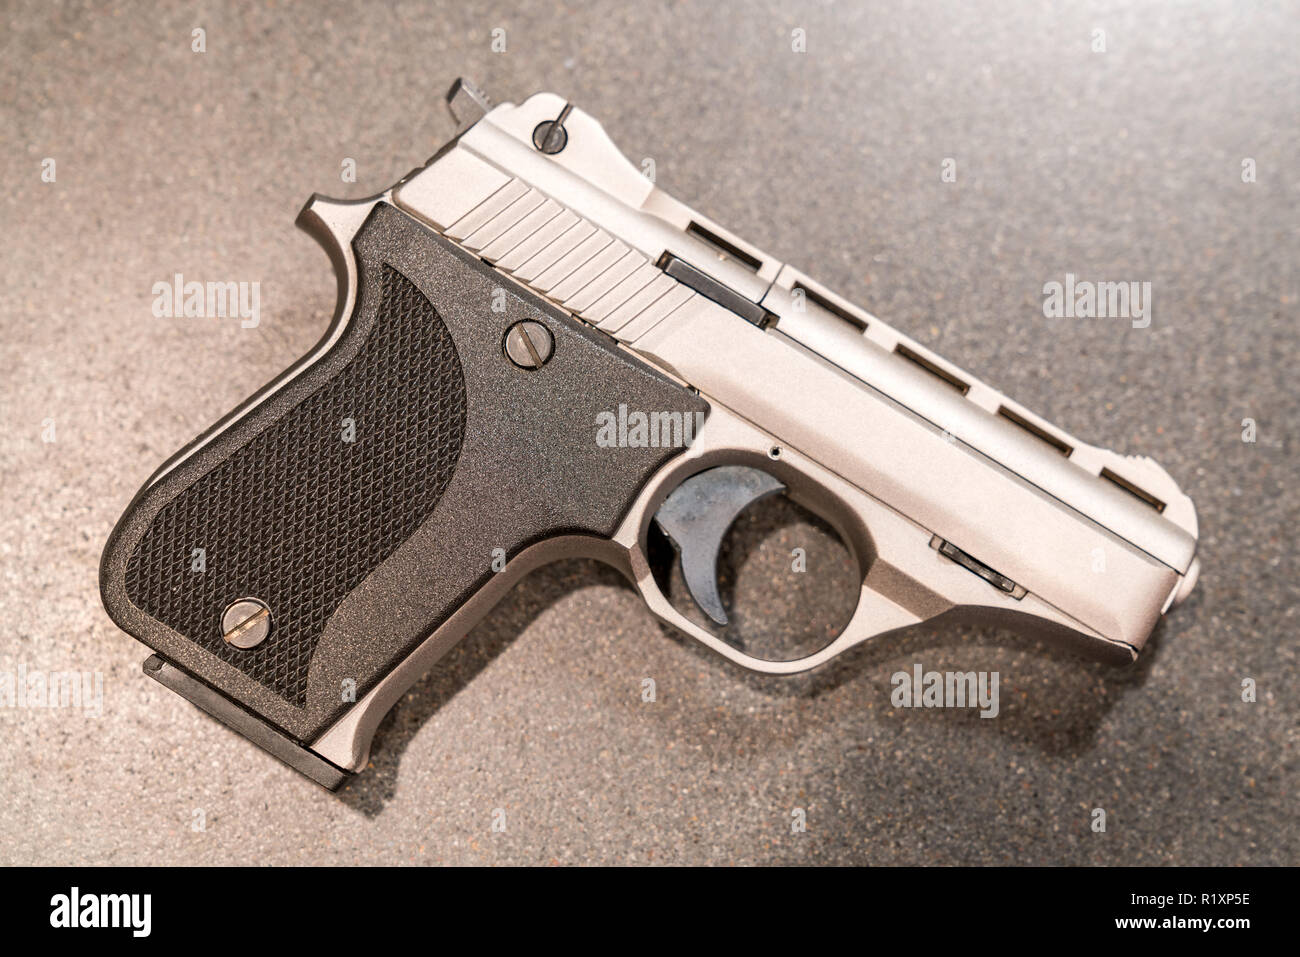 Concealed Weapon Stock Photos & Concealed Weapon Stock Images - Alamy